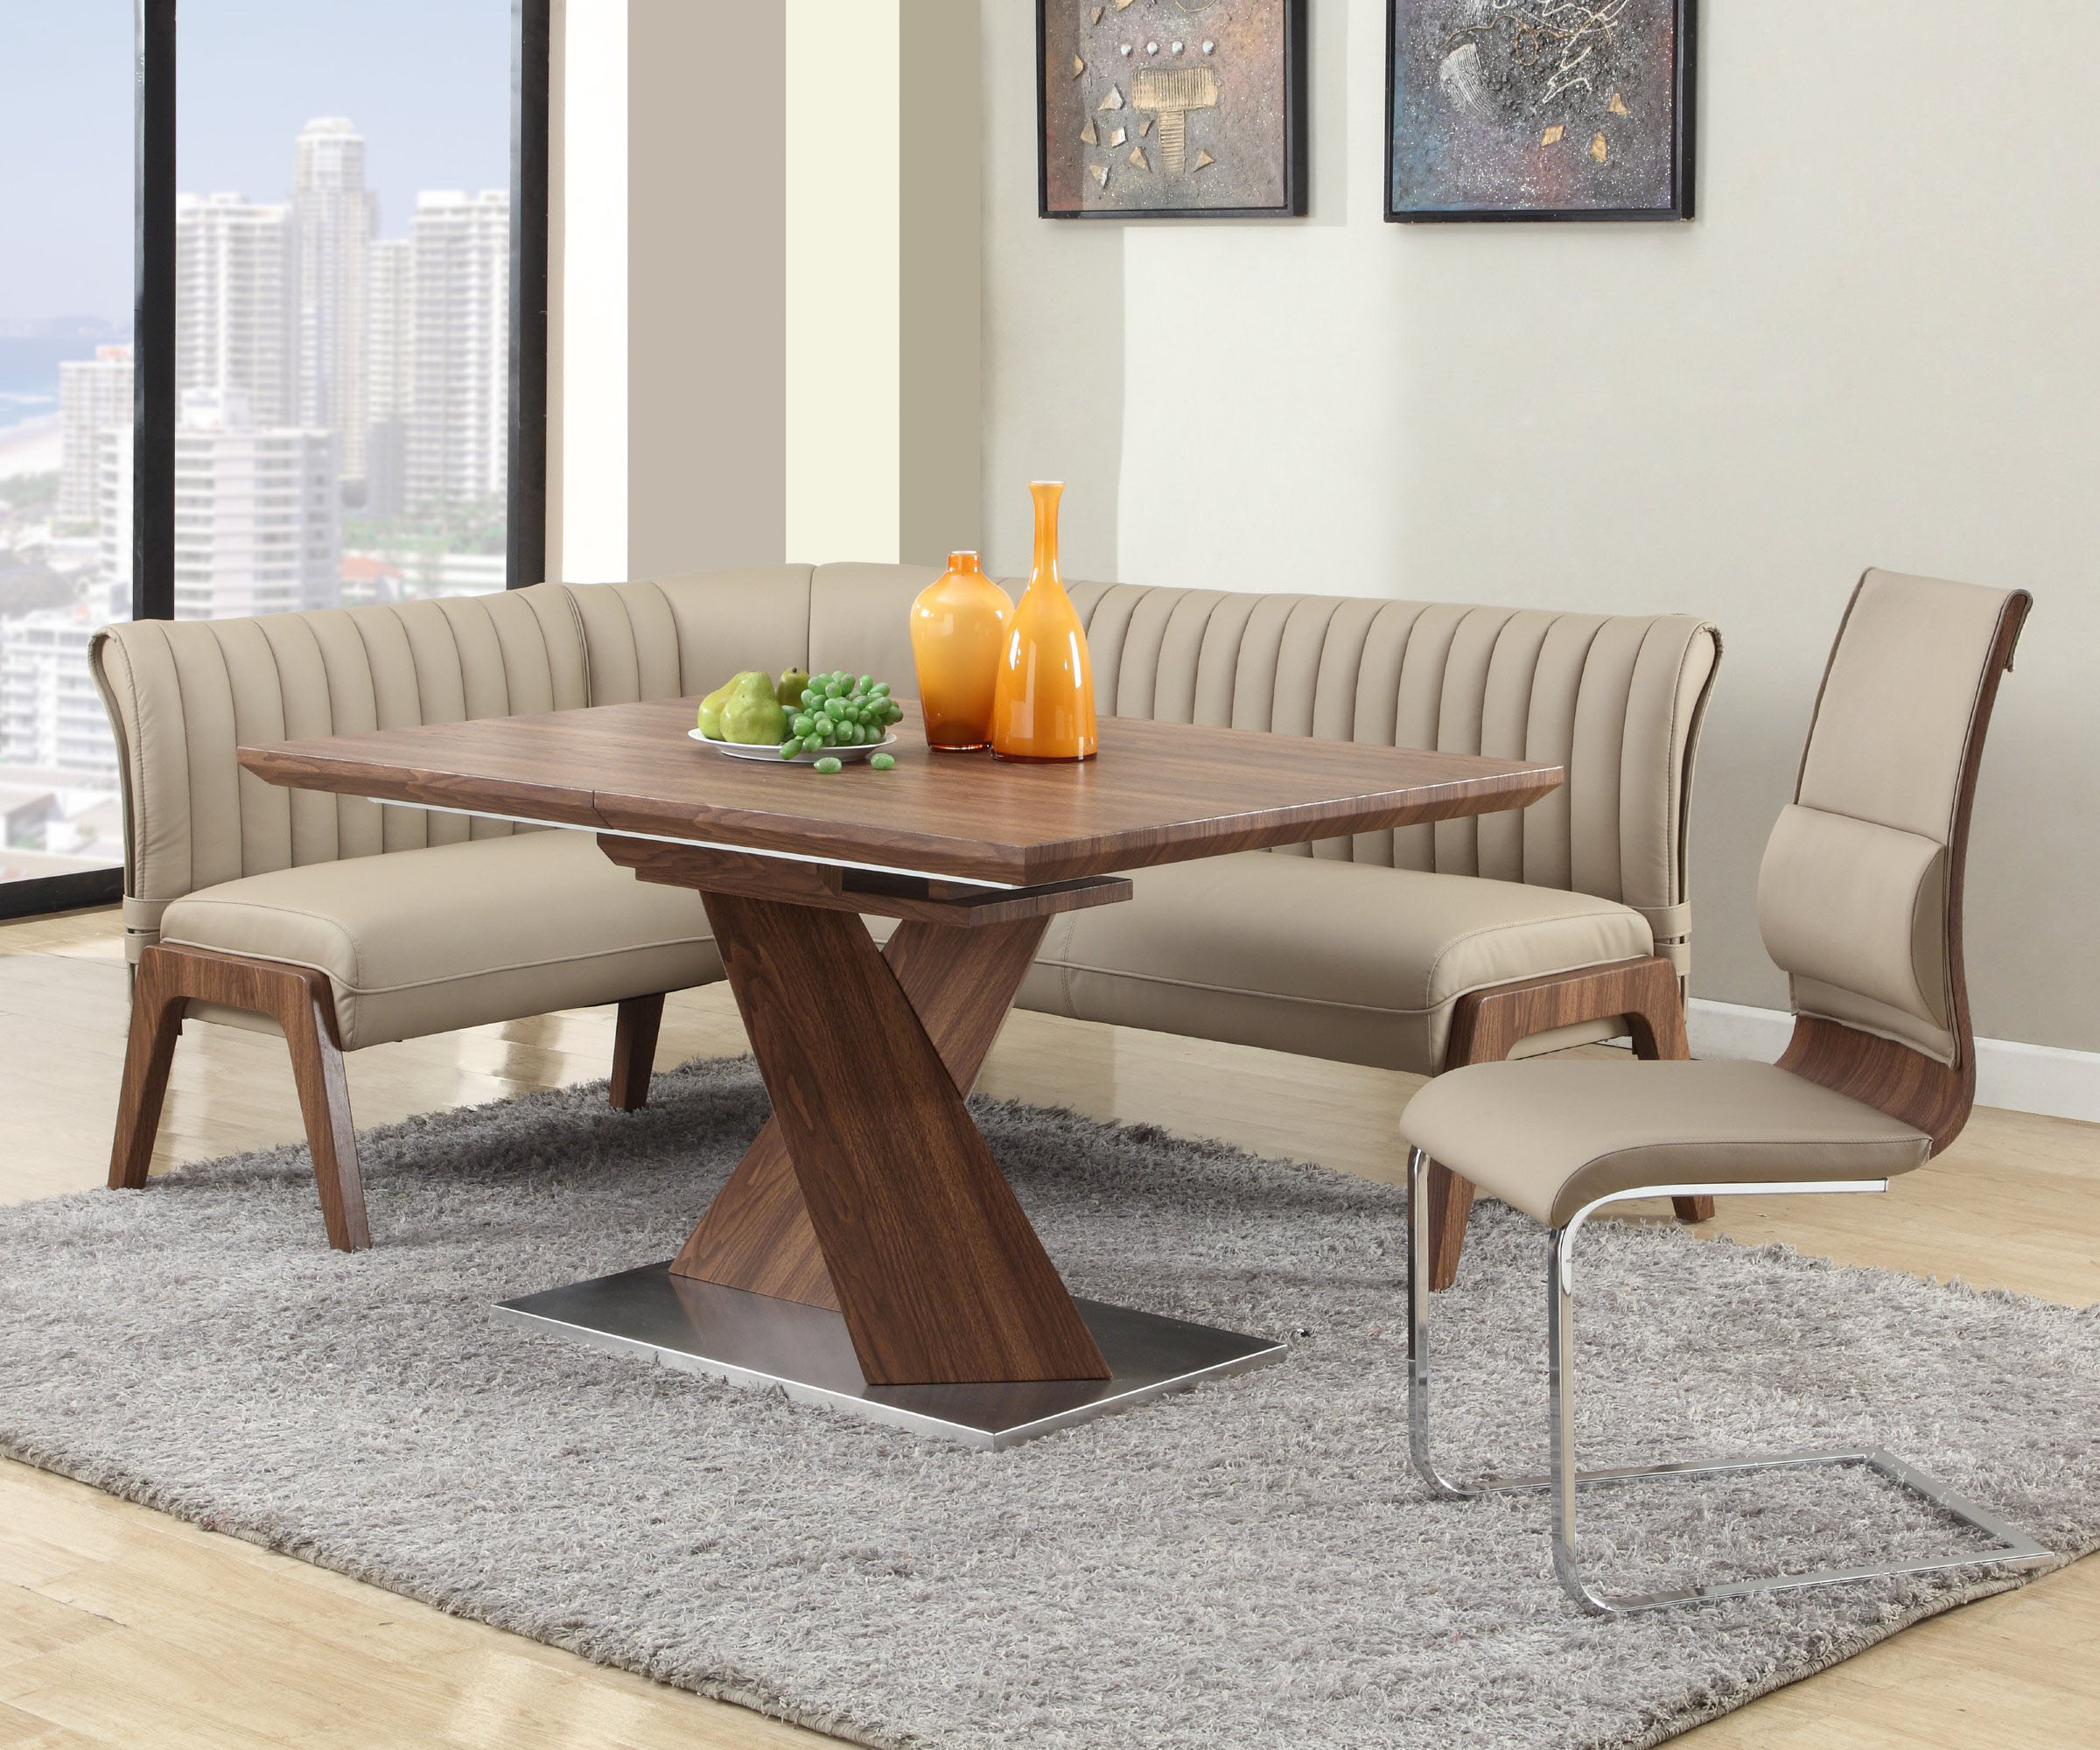 Extendable in wood leather furniture dining room sets with for Leather dining room sets